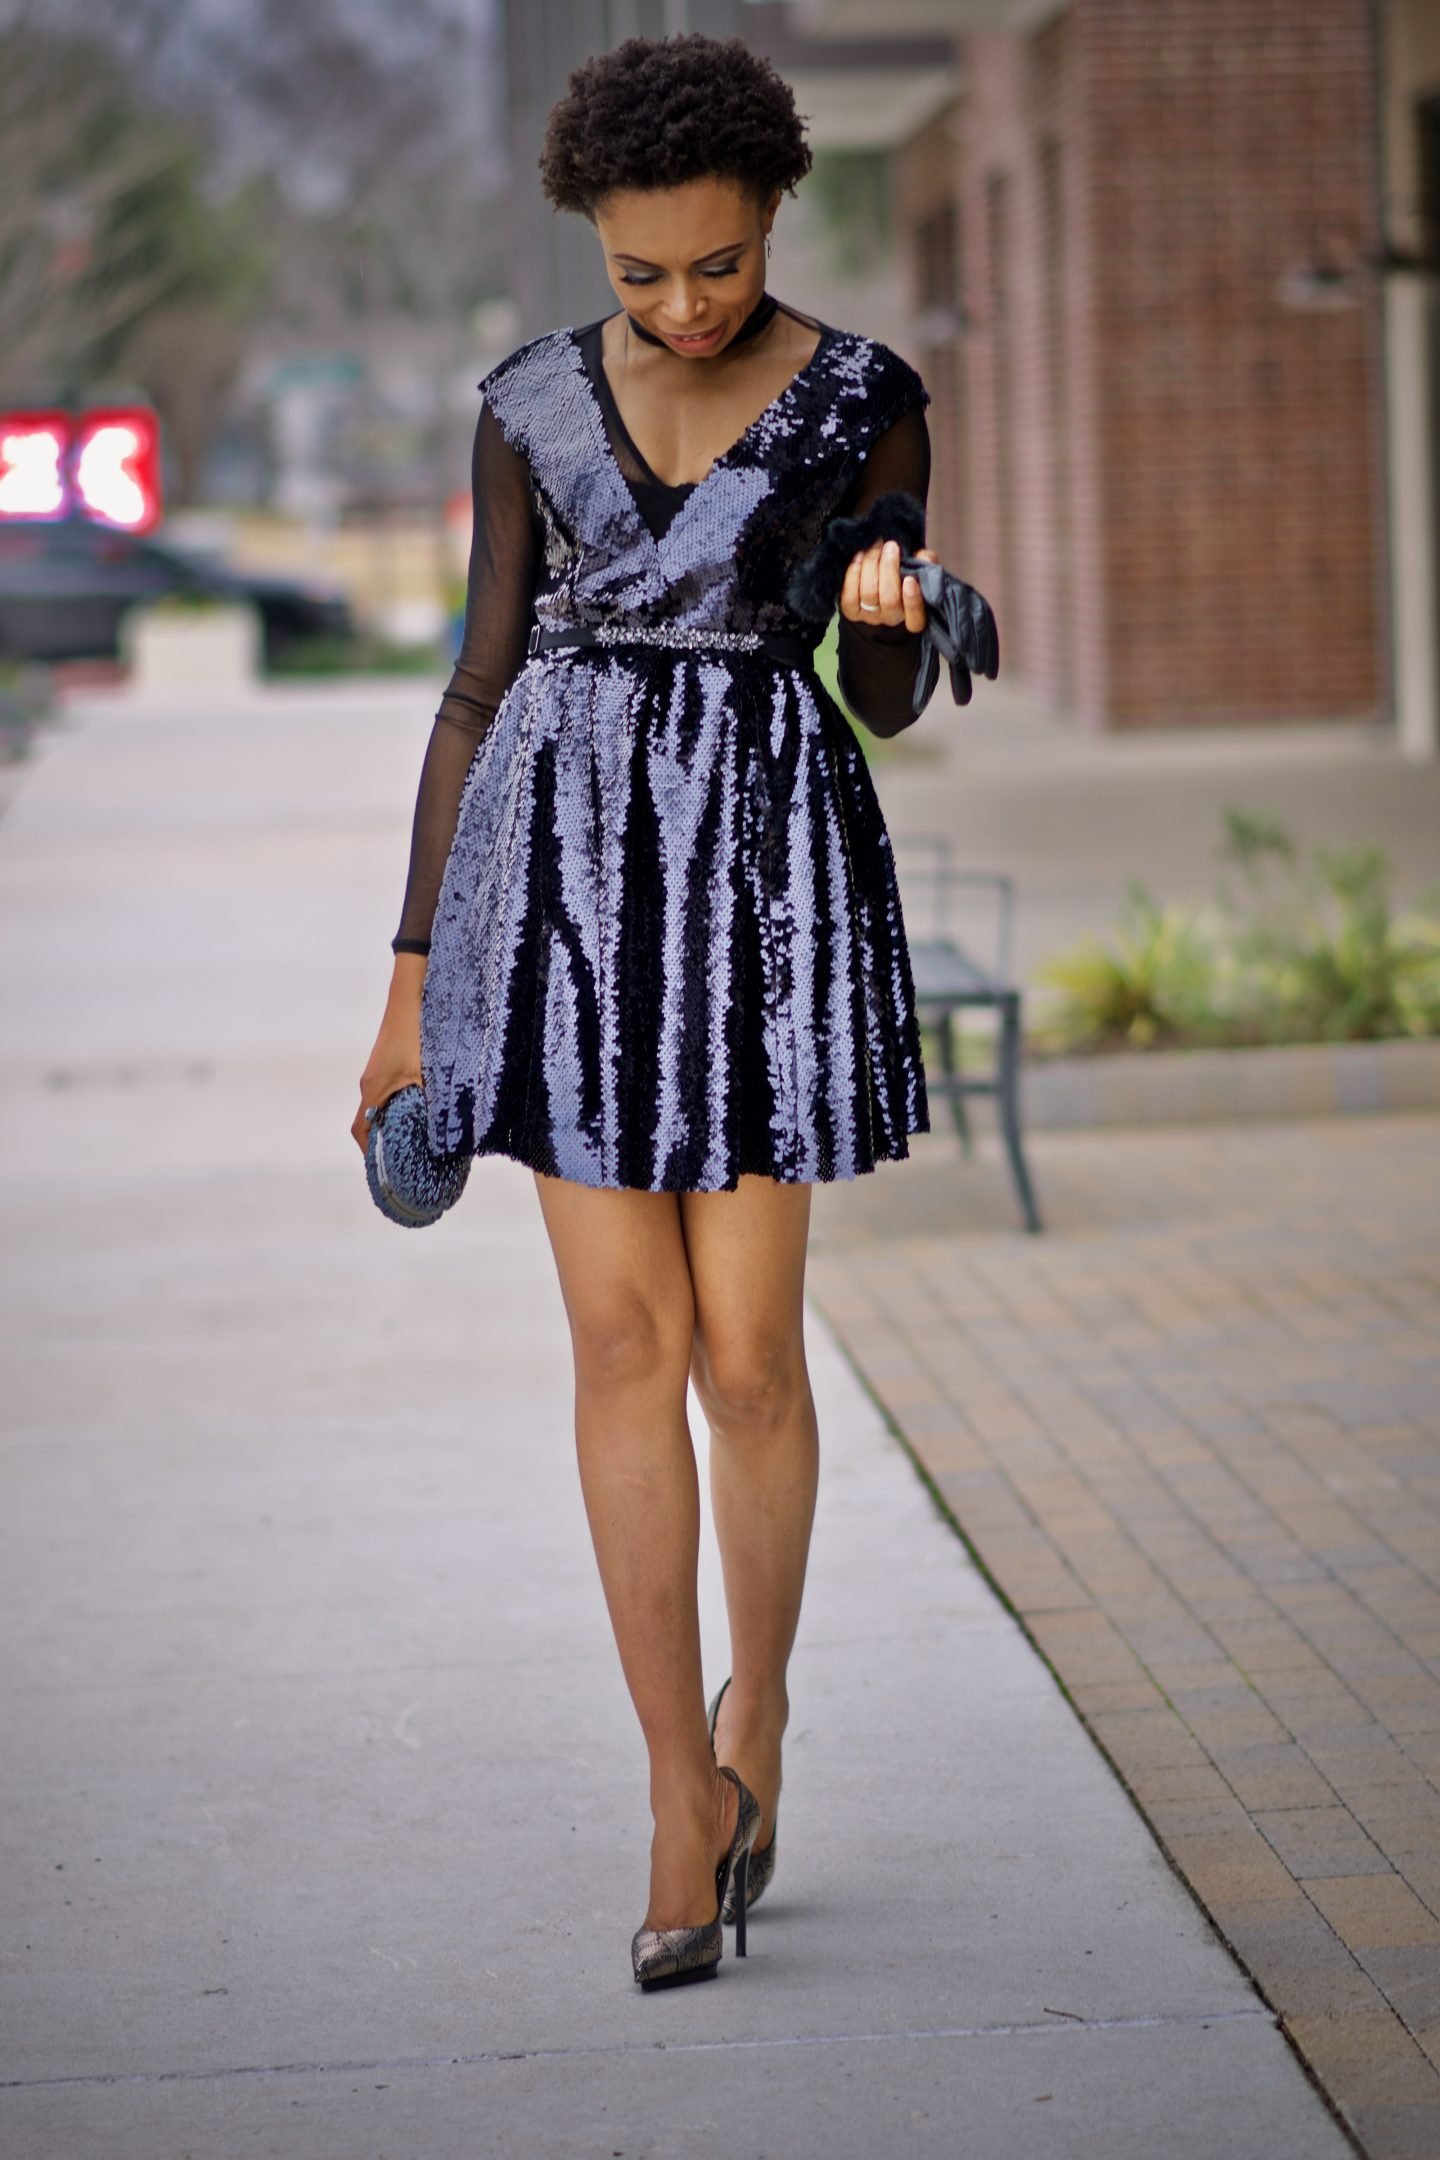 Sequined skater dress, the perfect party dress